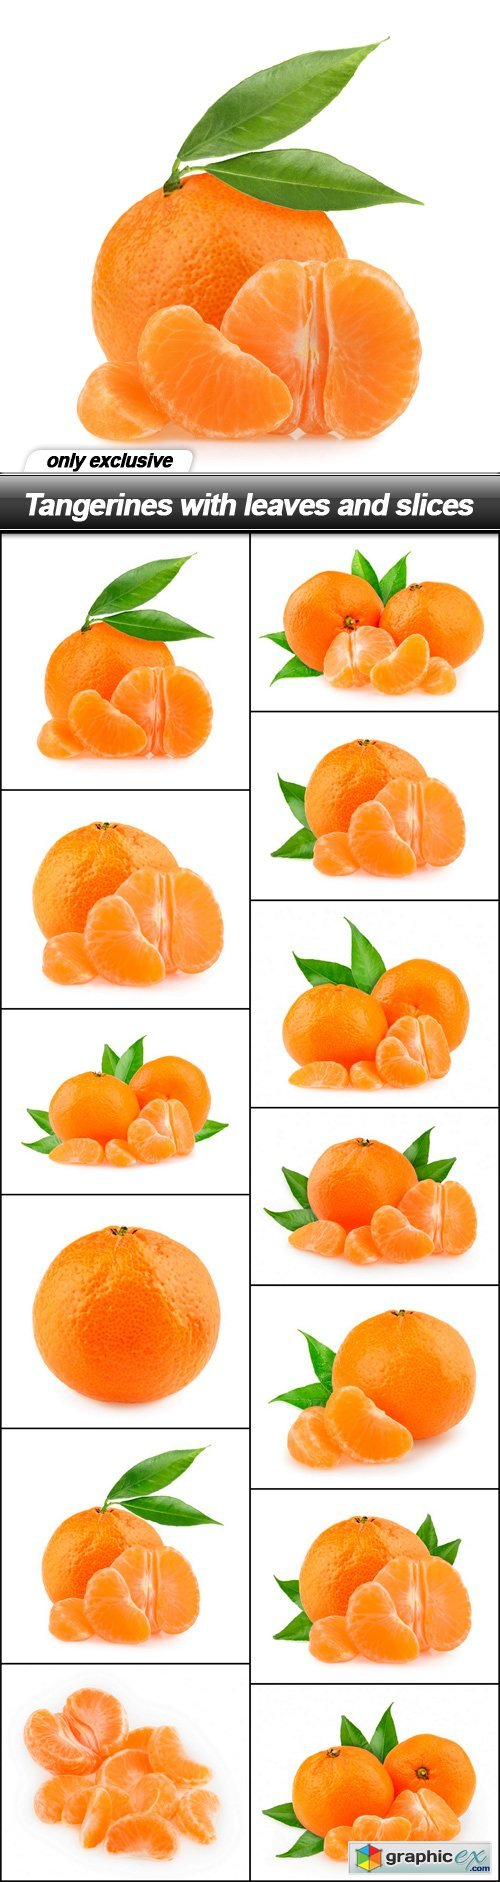 Tangerines with leaves and slices - 13 UHQ JPEG